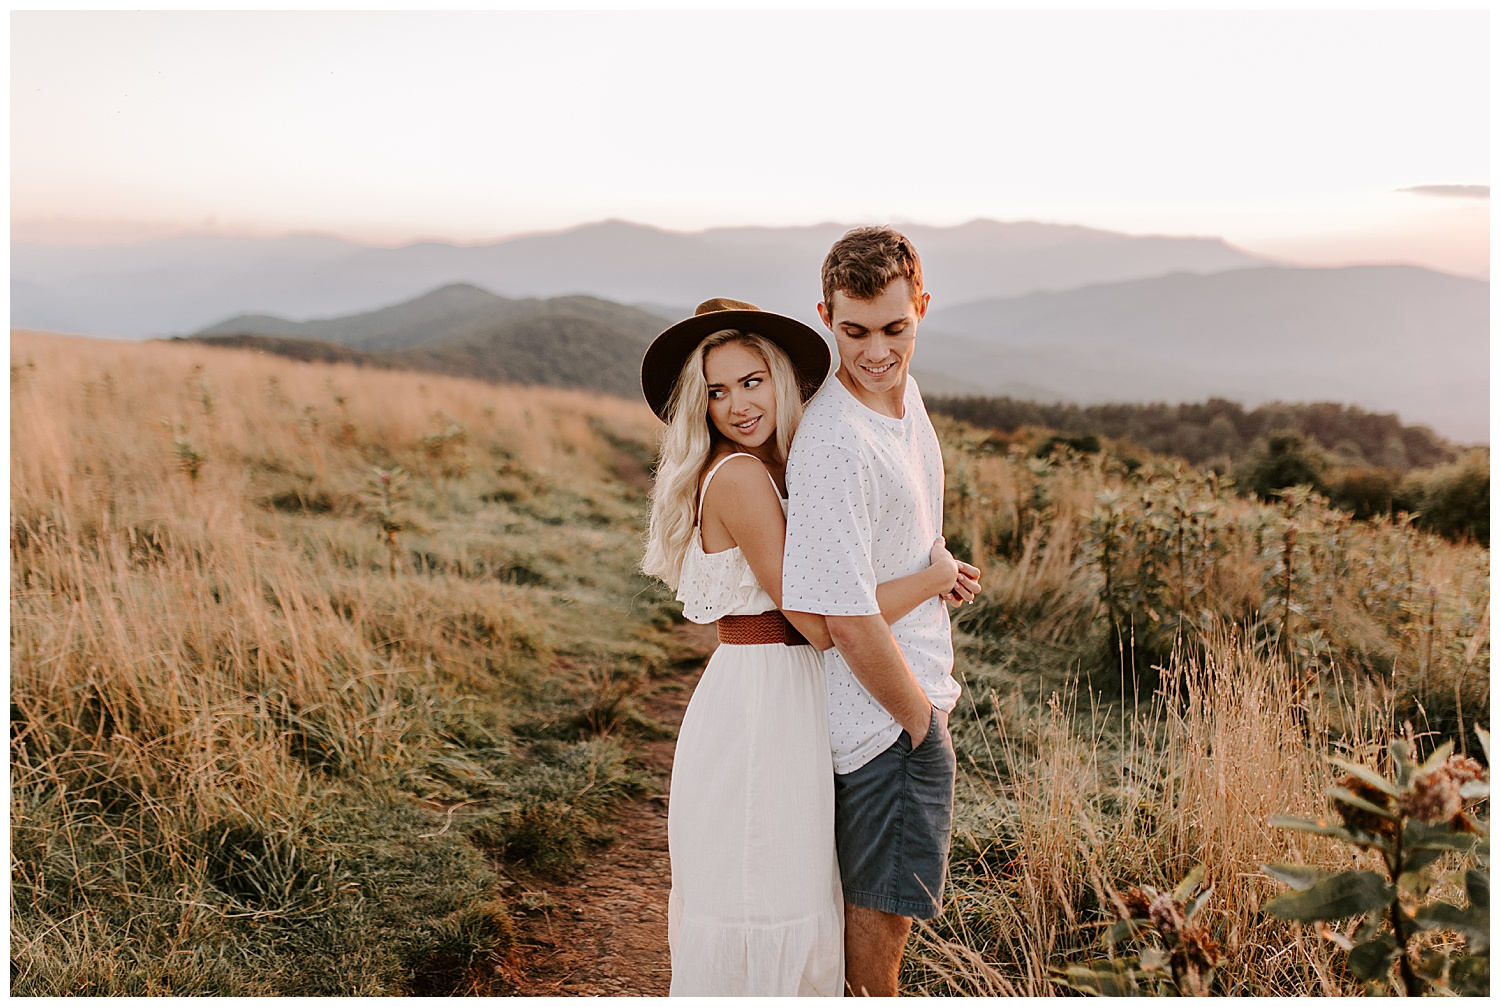 HANNAH_NICK_MAXPATCH_ENGAGEMENT2019-09-05_0031.jpg